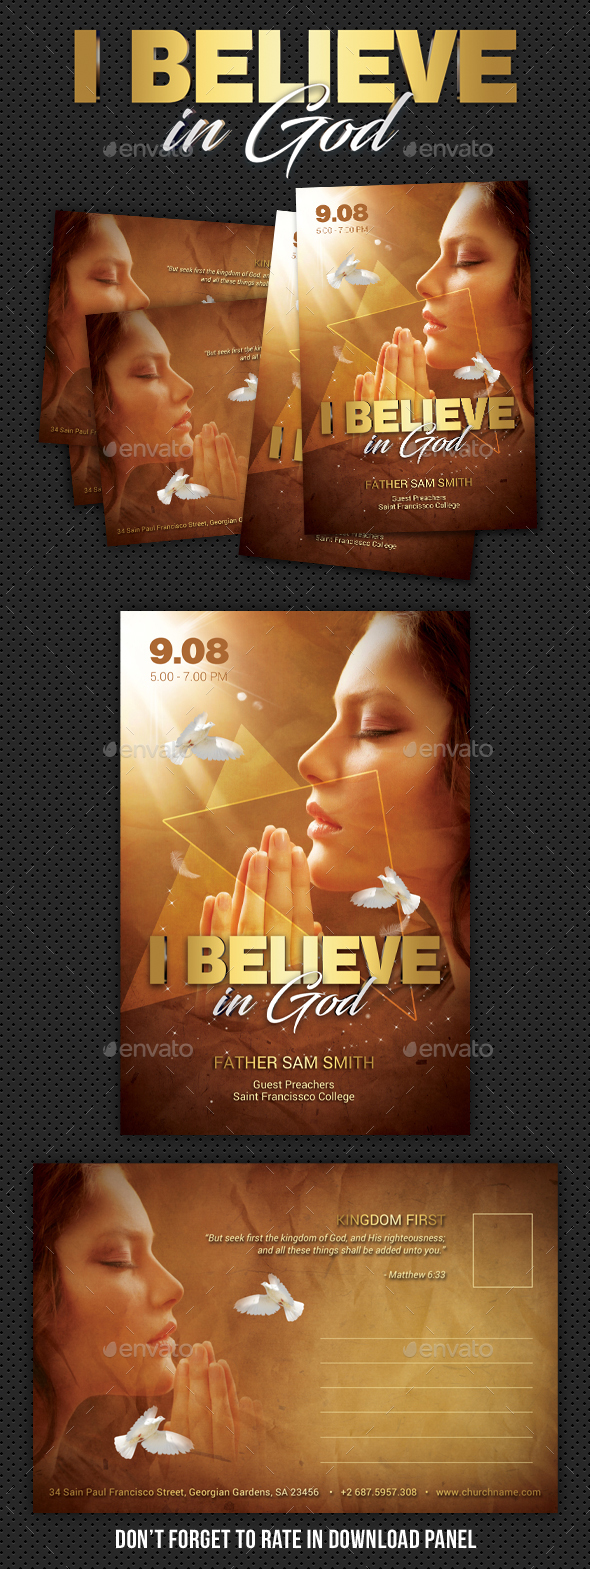 Believe In God Postcard - Cards & Invites Print Templates